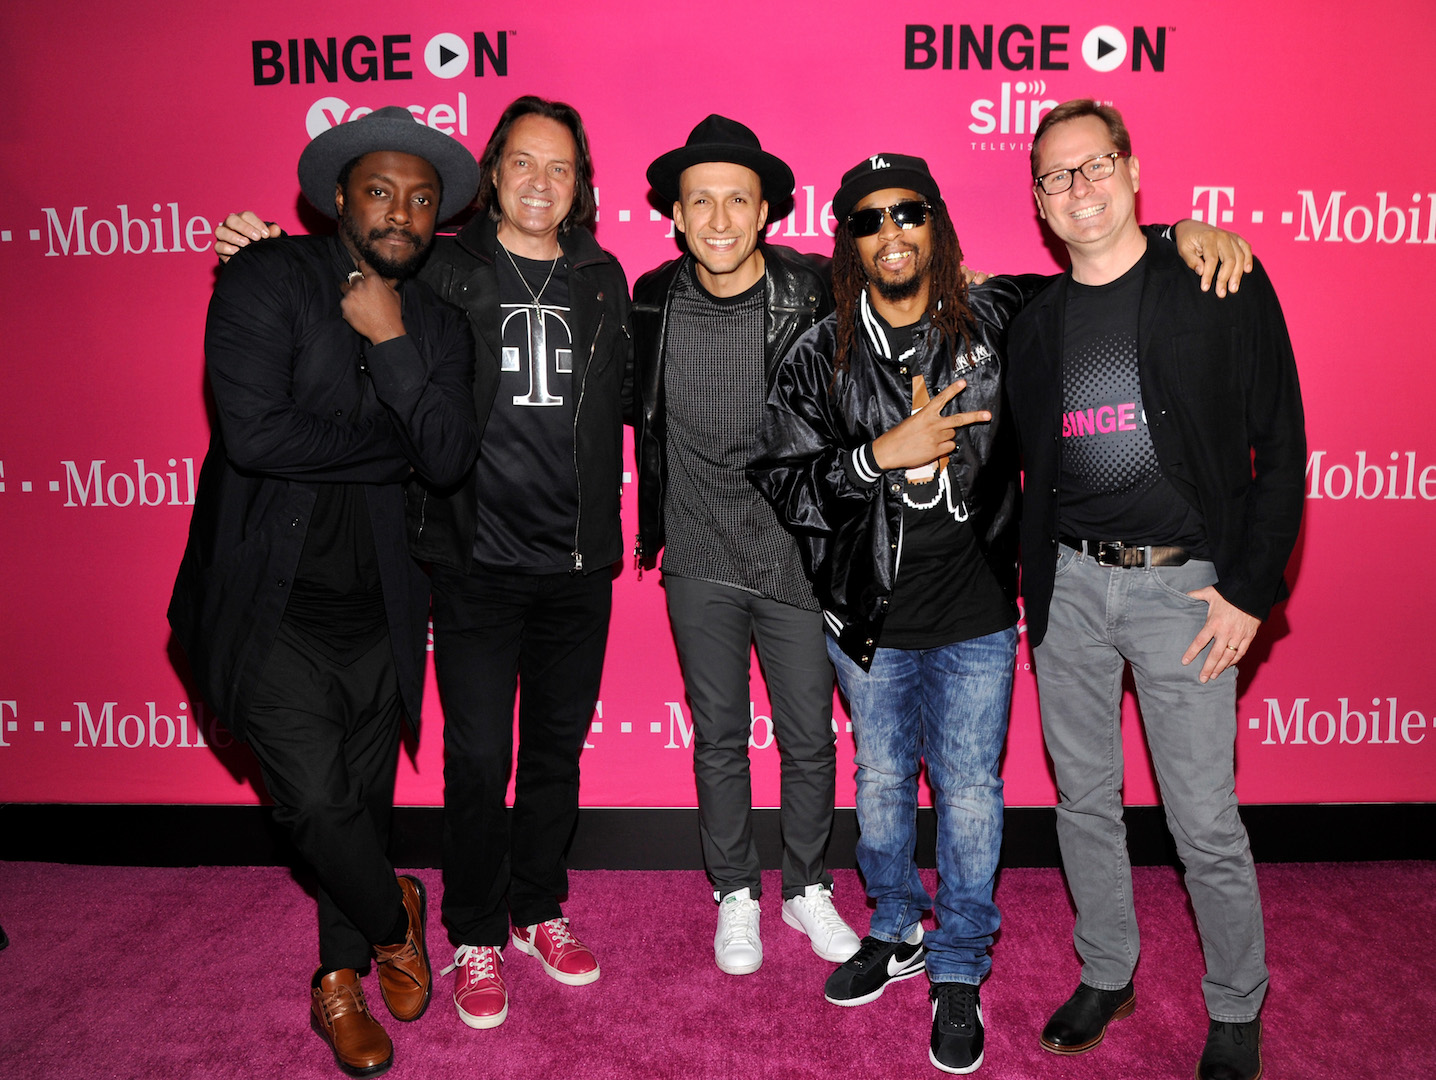 LOS ANGELES, CA - NOVEMBER 10:  (L-R) Singer-songwriter will.i.am, President and CEO of T-Mobile John Legere, DJ Vice, hip-hop artist Lil Jon and COO of T-Mobile Mike Sievart attend T-Mobile Un-carrier X Launch Celebration at The Shrine Auditorium on November 10, 2015 in Los Angeles, California.  (Photo by John Sciulli/Getty Images for T-Mobile)